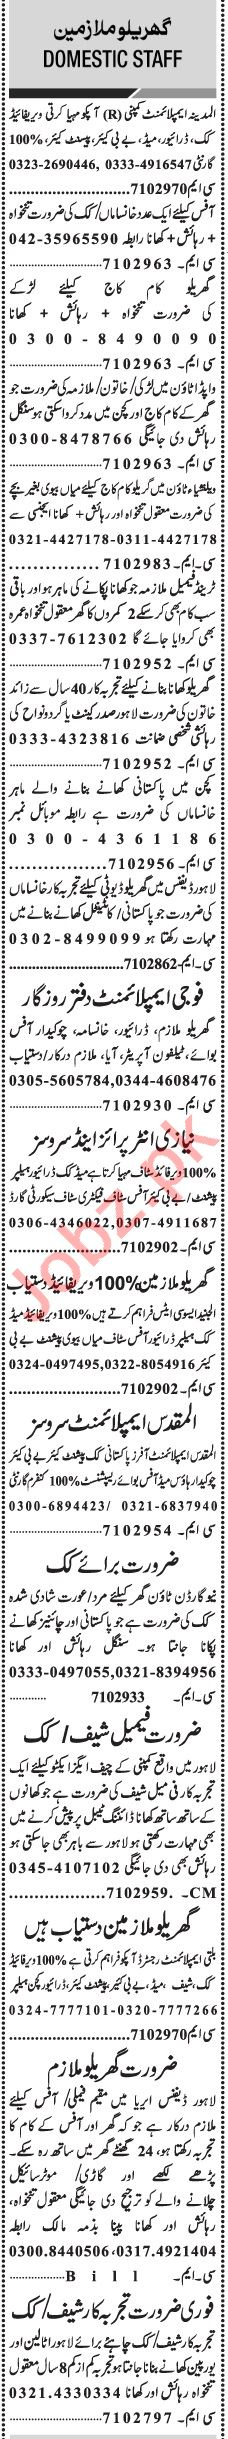 Jang Sunday Classified Ads 1st August 2021 for Domestic